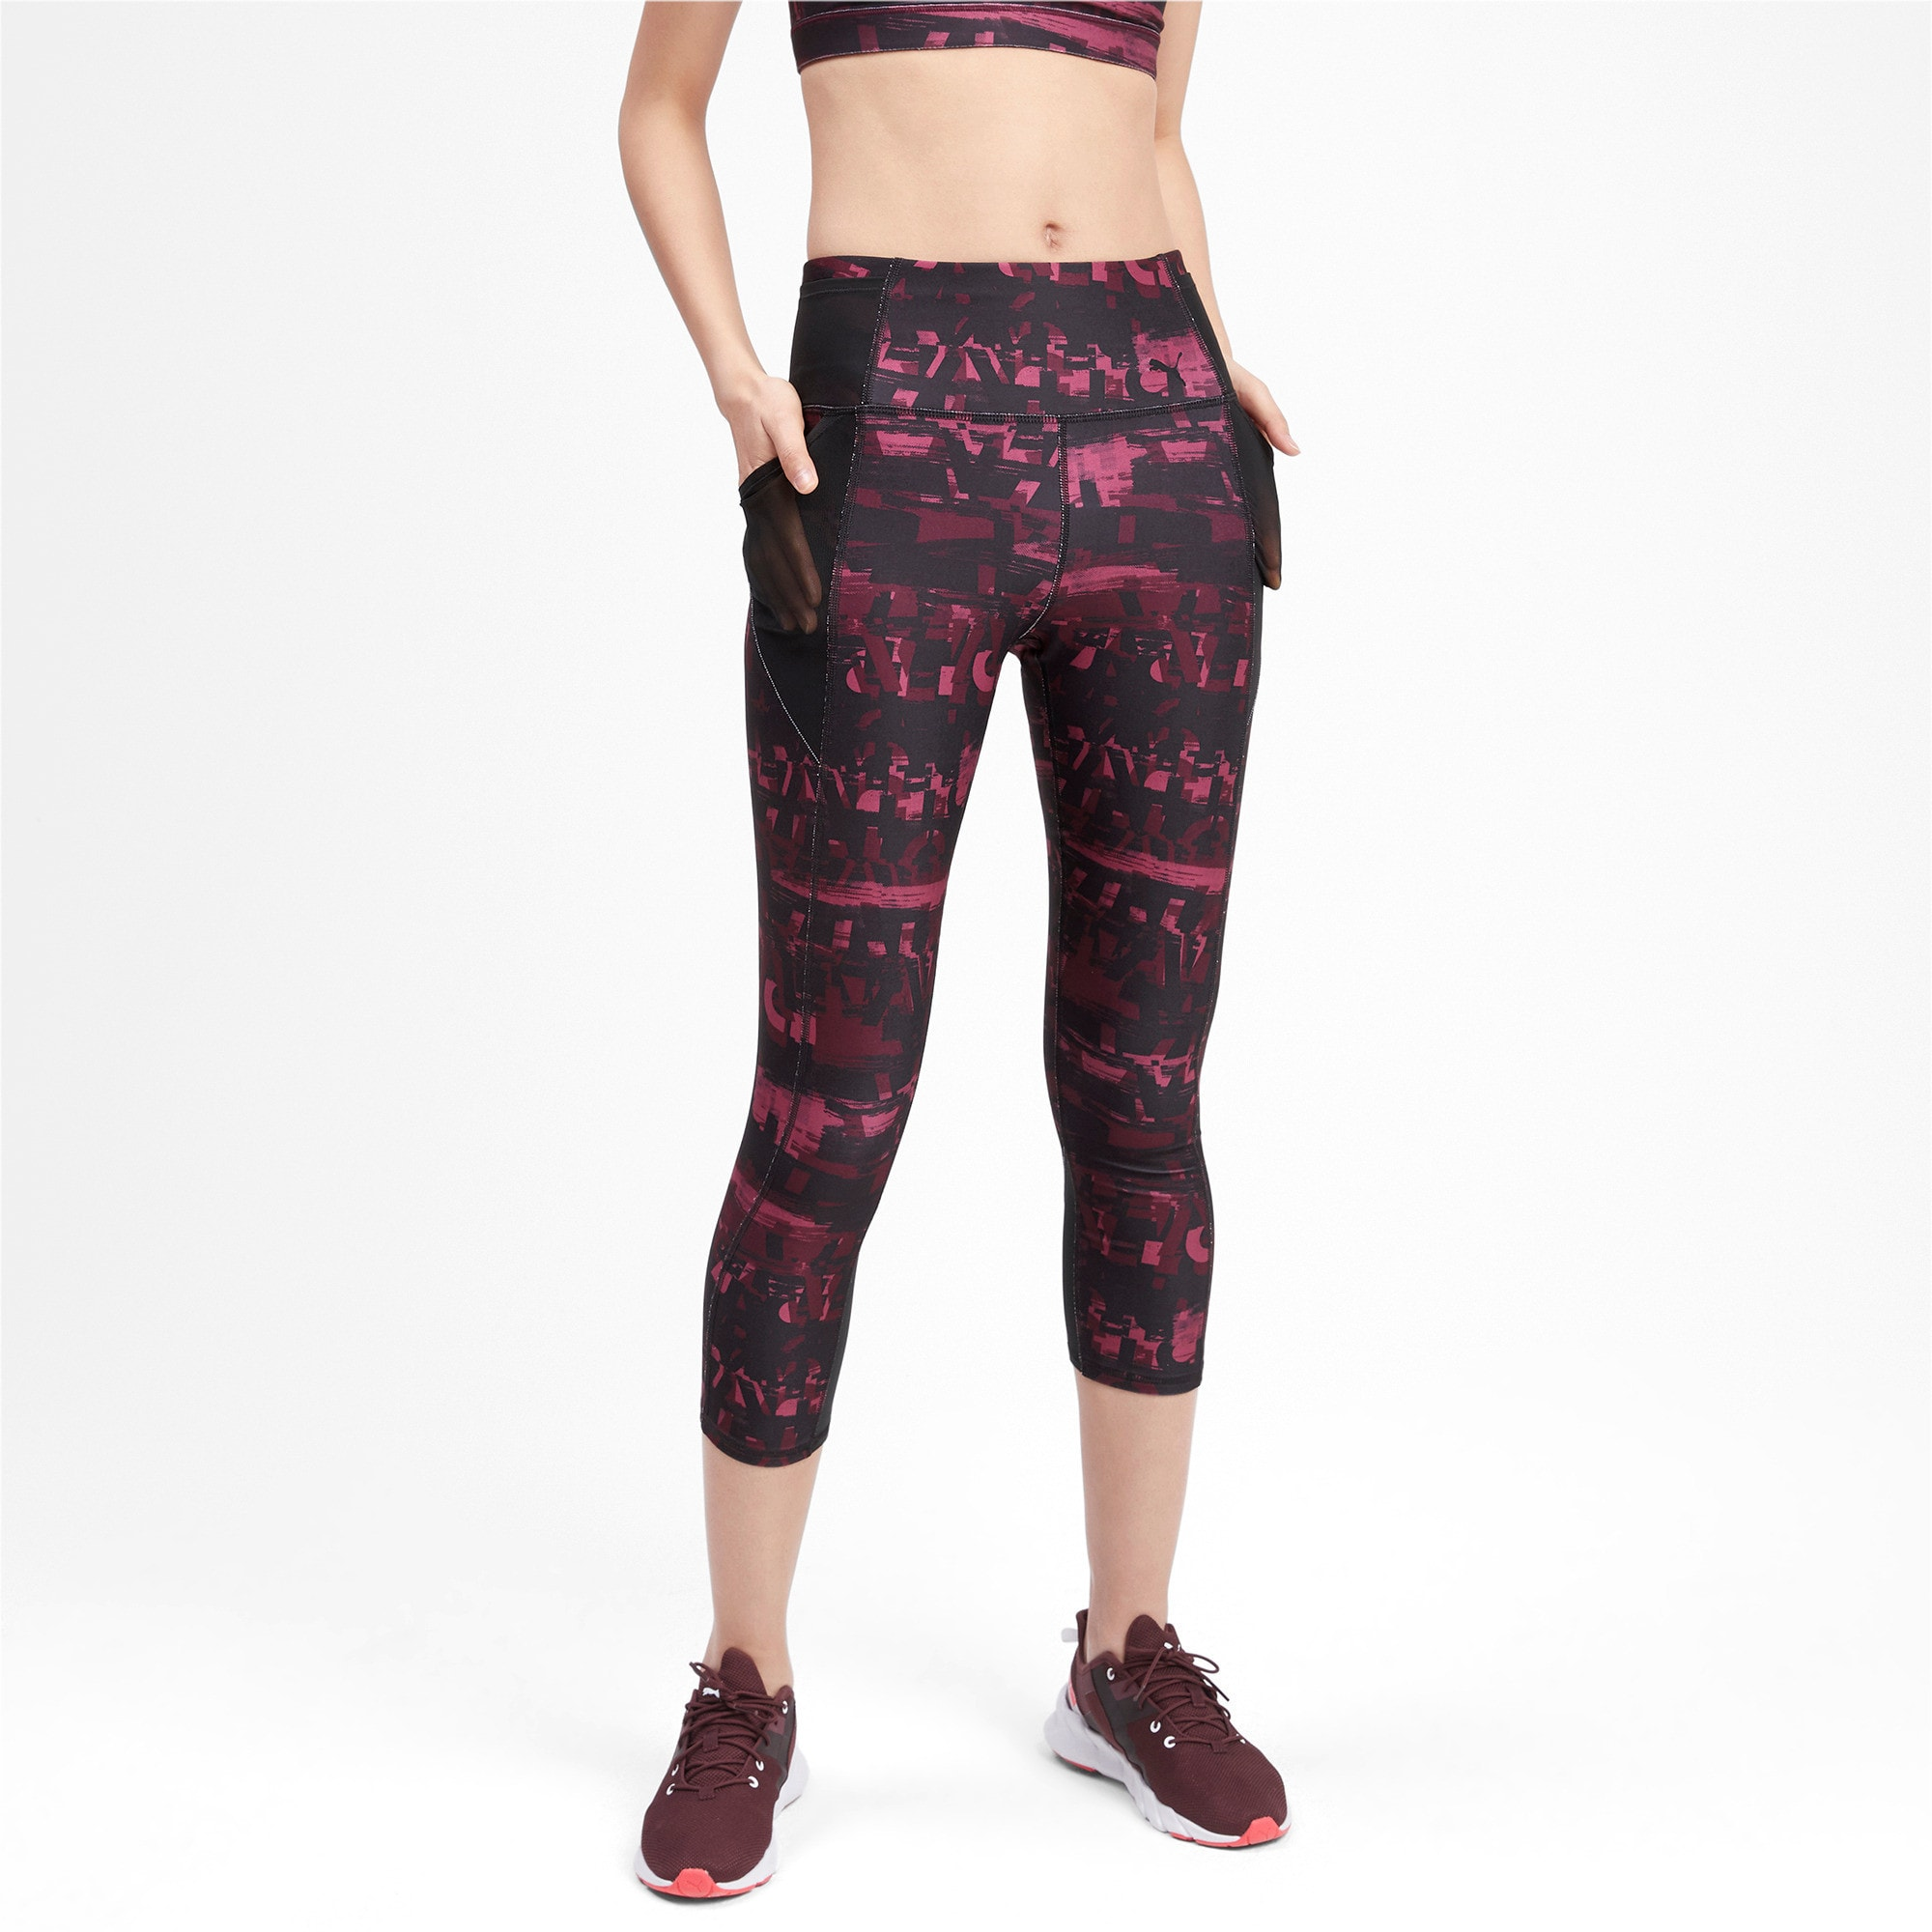 Thumbnail 1 of Be Bold All-Over Print 3/4 Women's Training Tights, Vineyard Wine, medium-IND